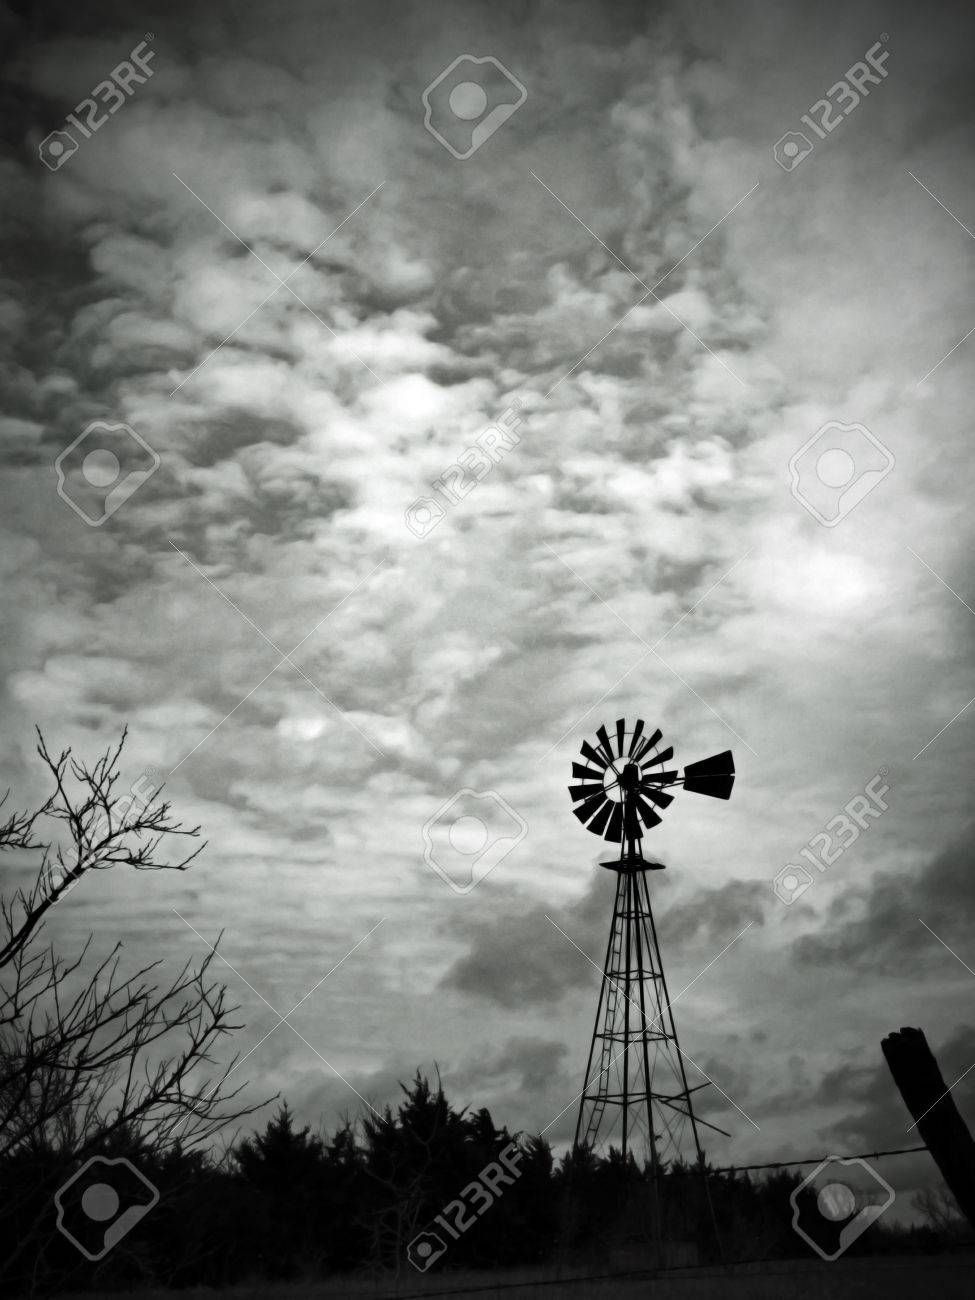 This Black And White Image Features A Lonely Old Fashioned Windmill